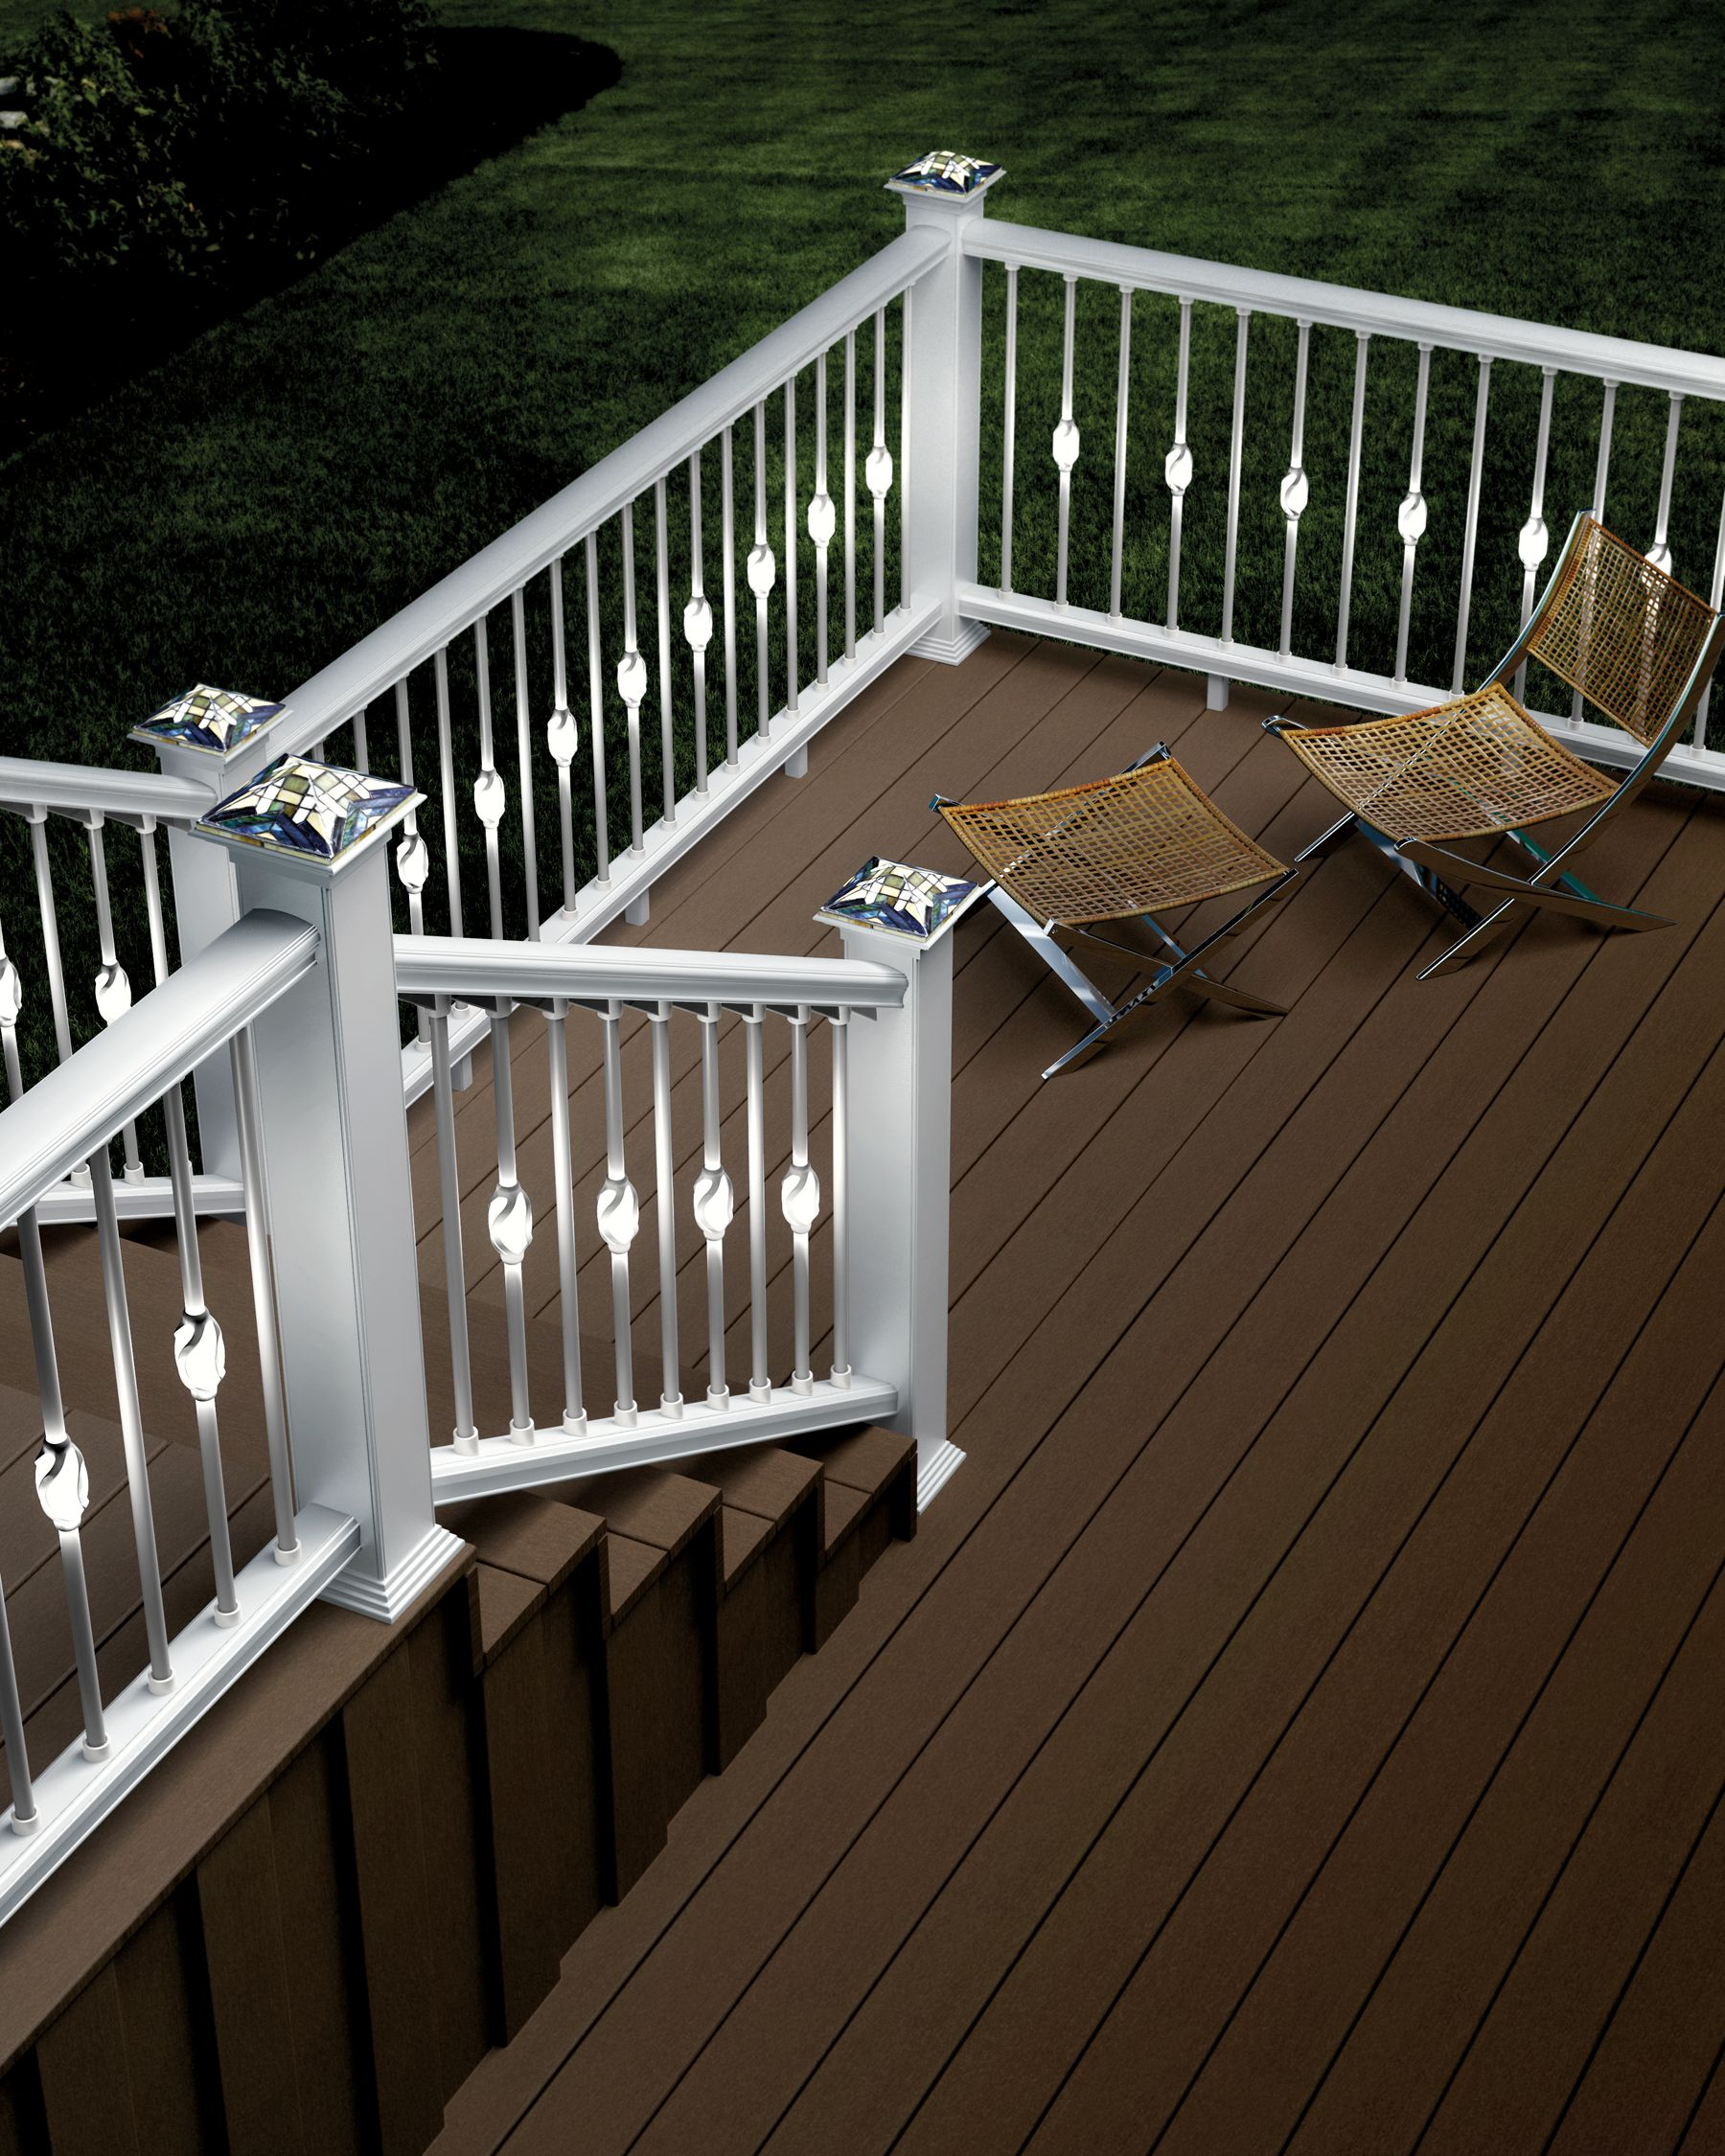 deck accent lighting. Deckorators Introduces New Low Voltage Accent Lighting For Decks And Outdoor Living Areas Deck E